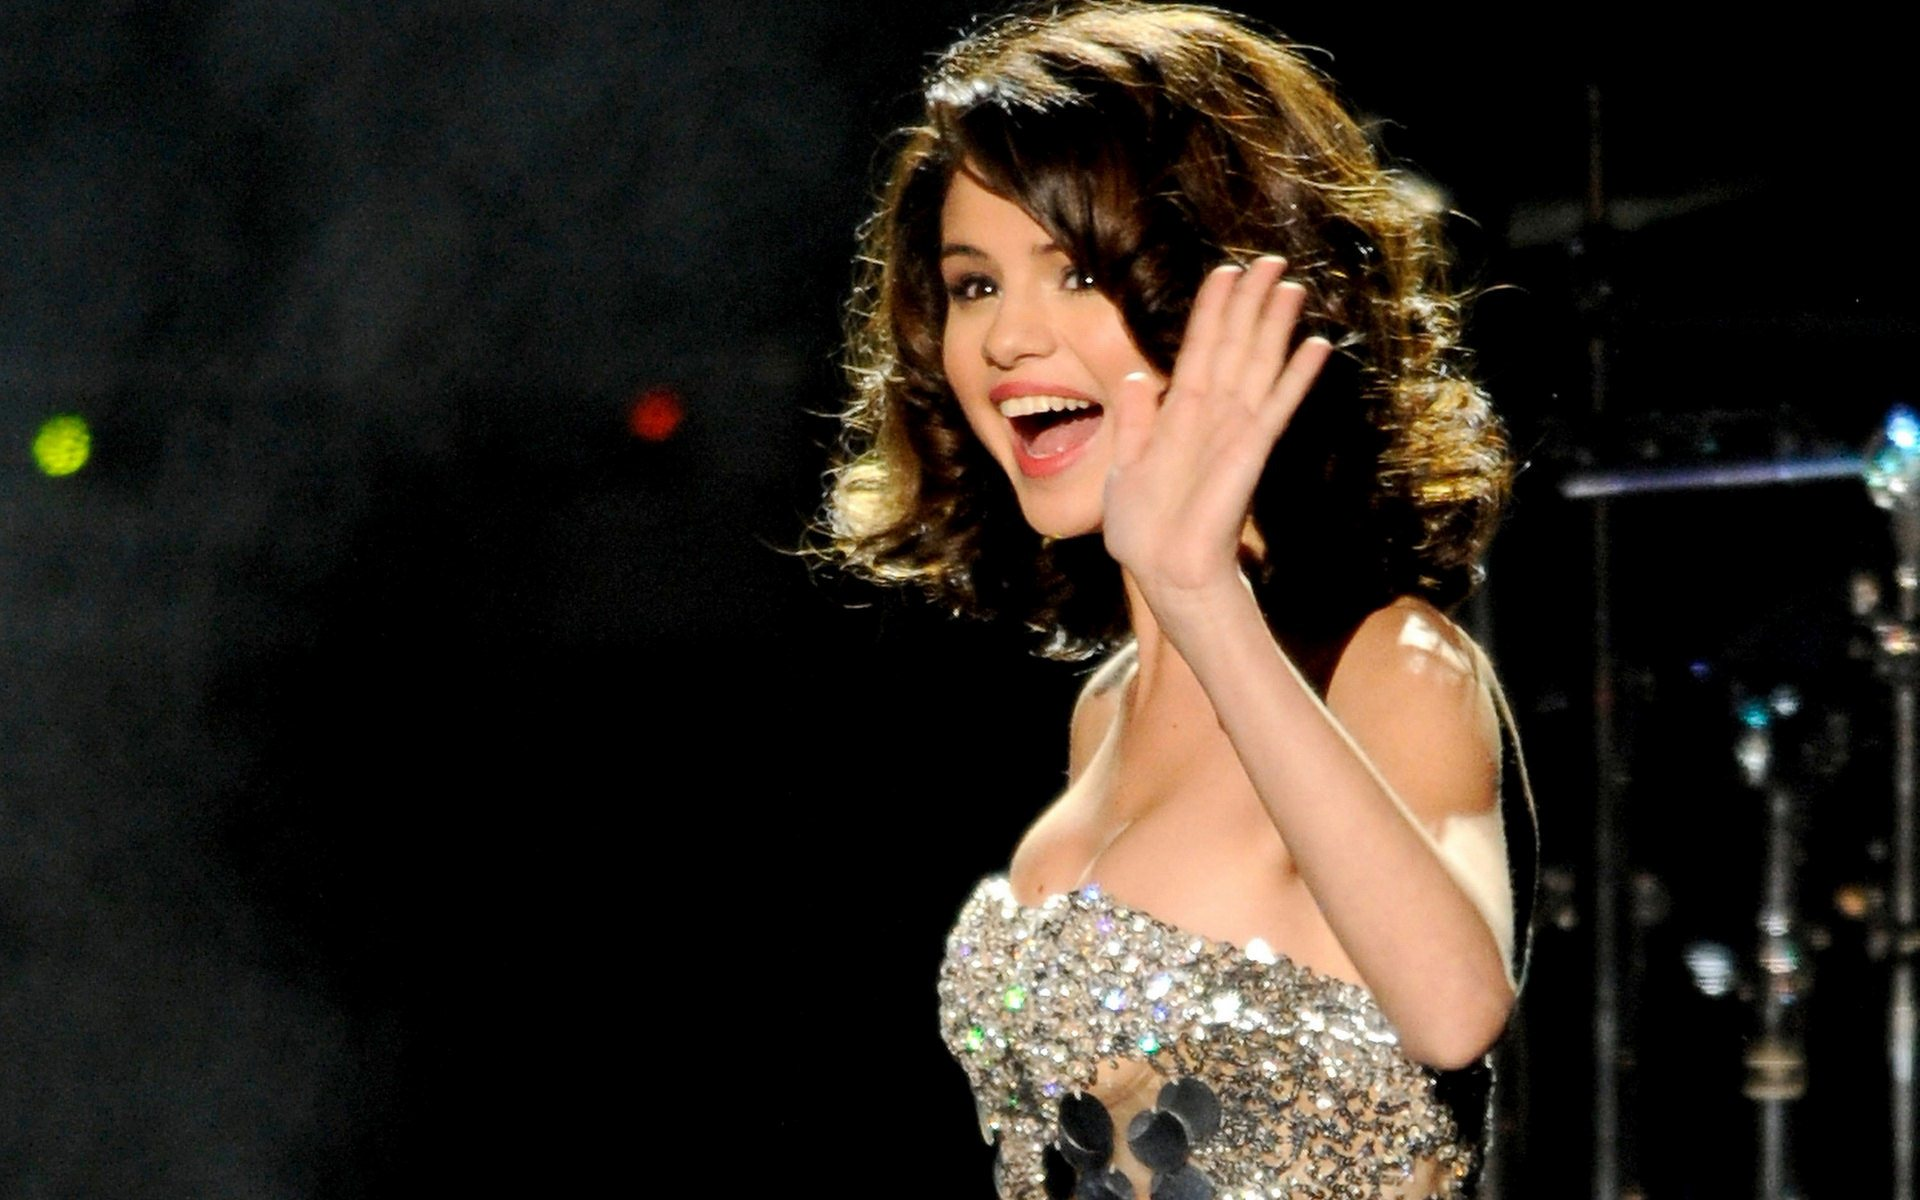 Selena Gomez Confirmed She Is Starring In The Edgy New